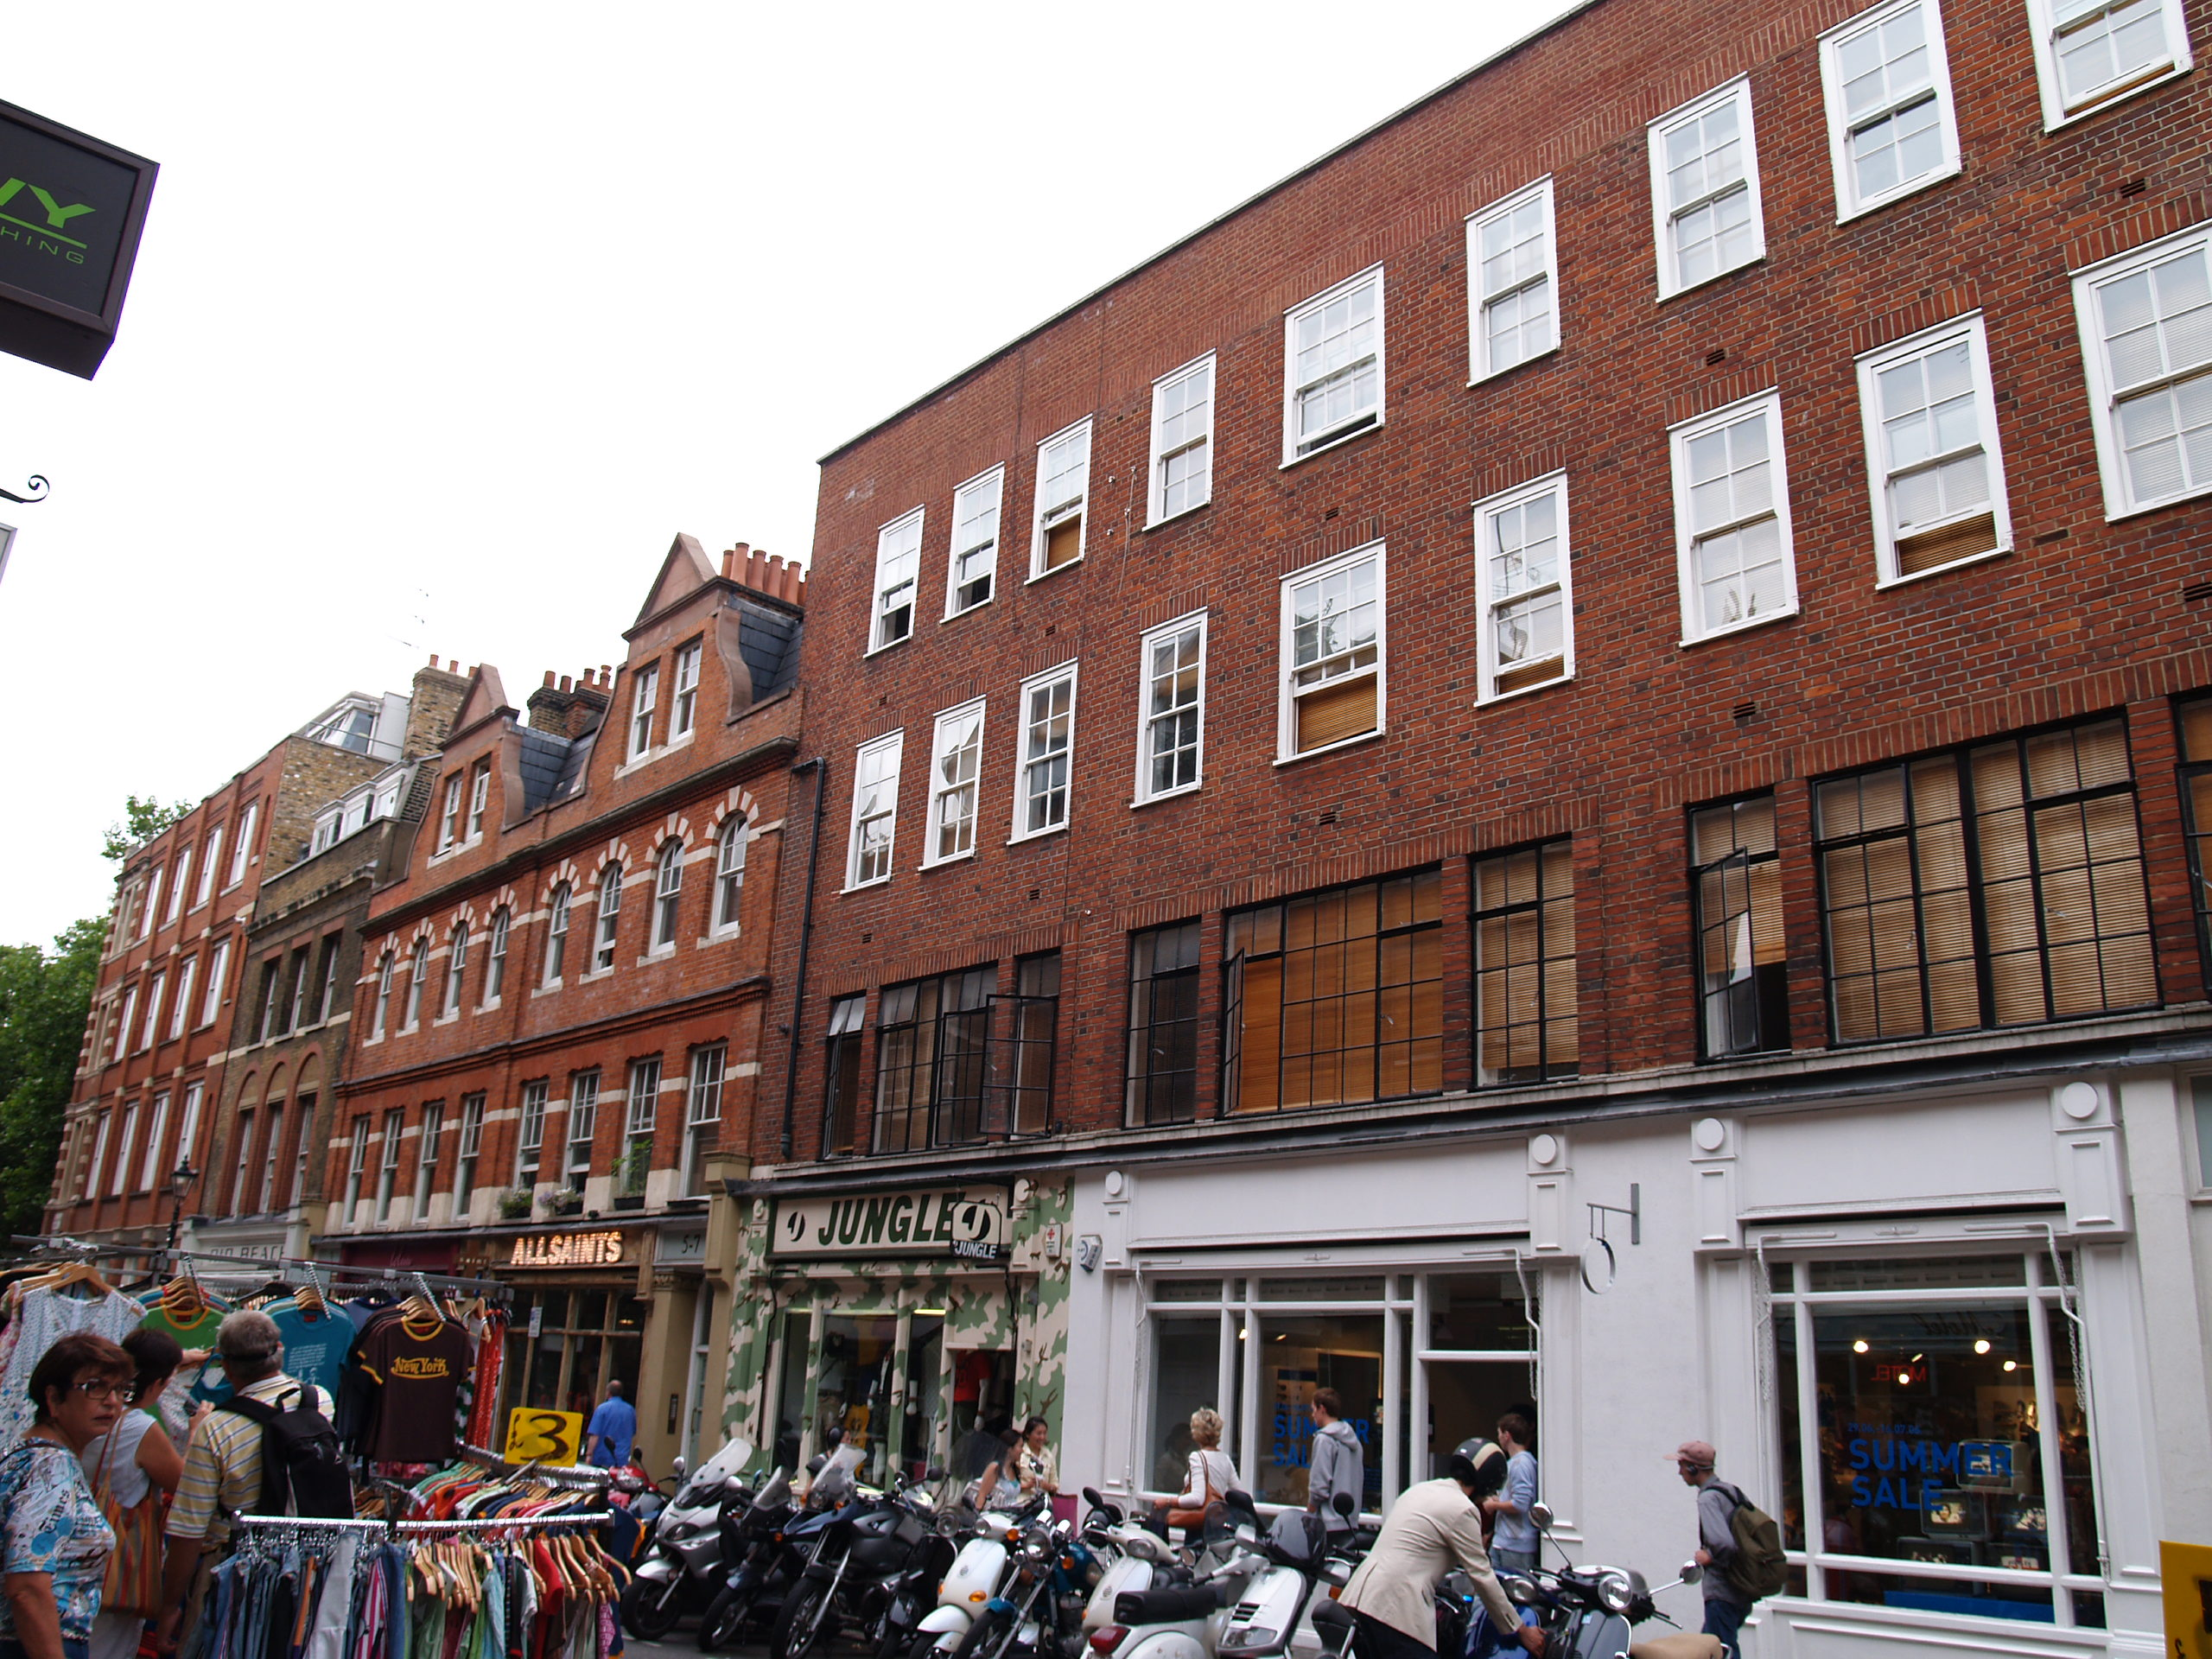 Earlham Street west facades after restoration by Shaftesbury PLC.